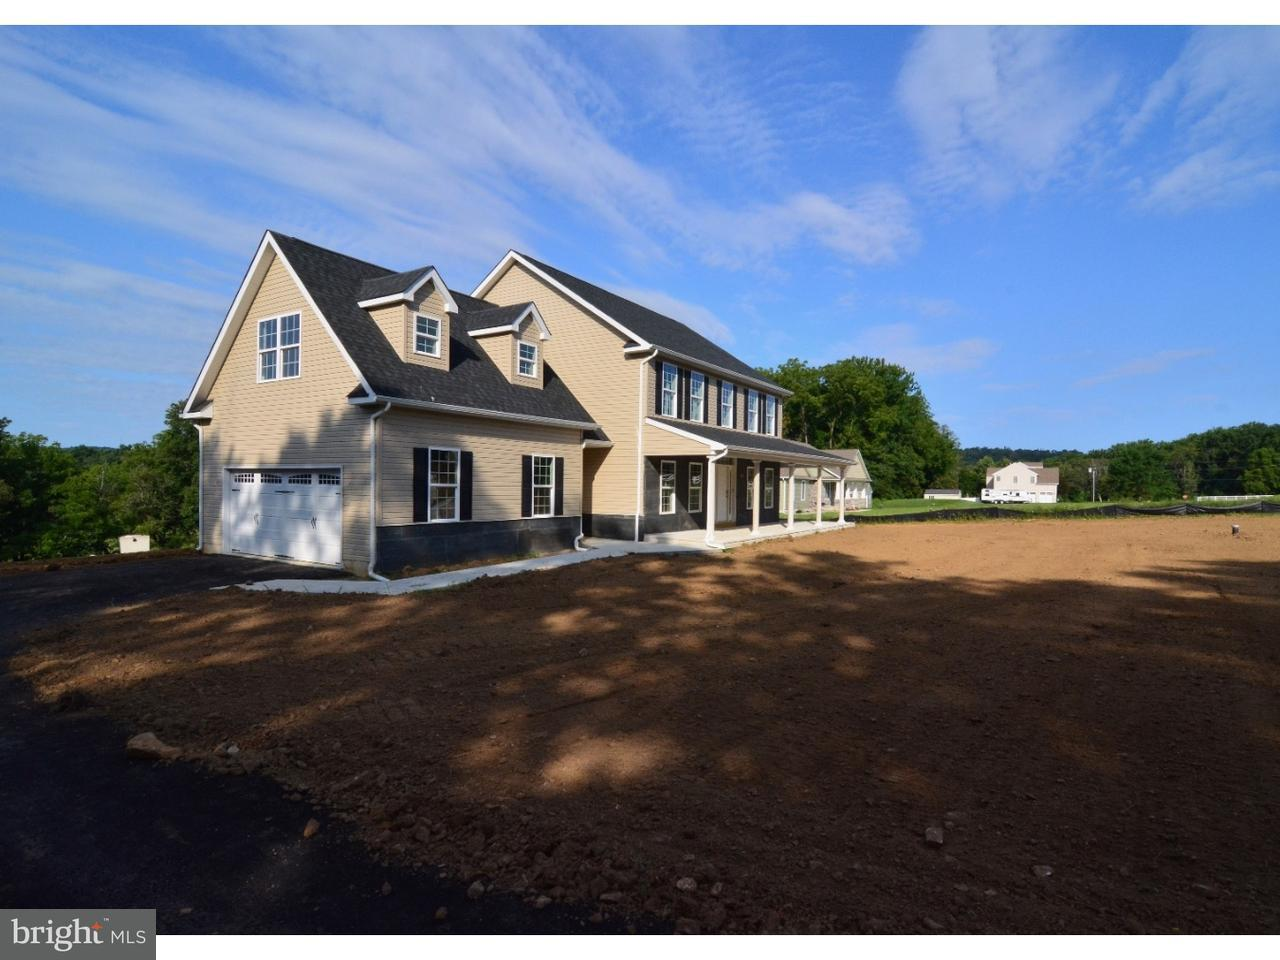 Single Family Home for Sale at 26 JADE Lane Hereford, Pennsylvania 18056 United States